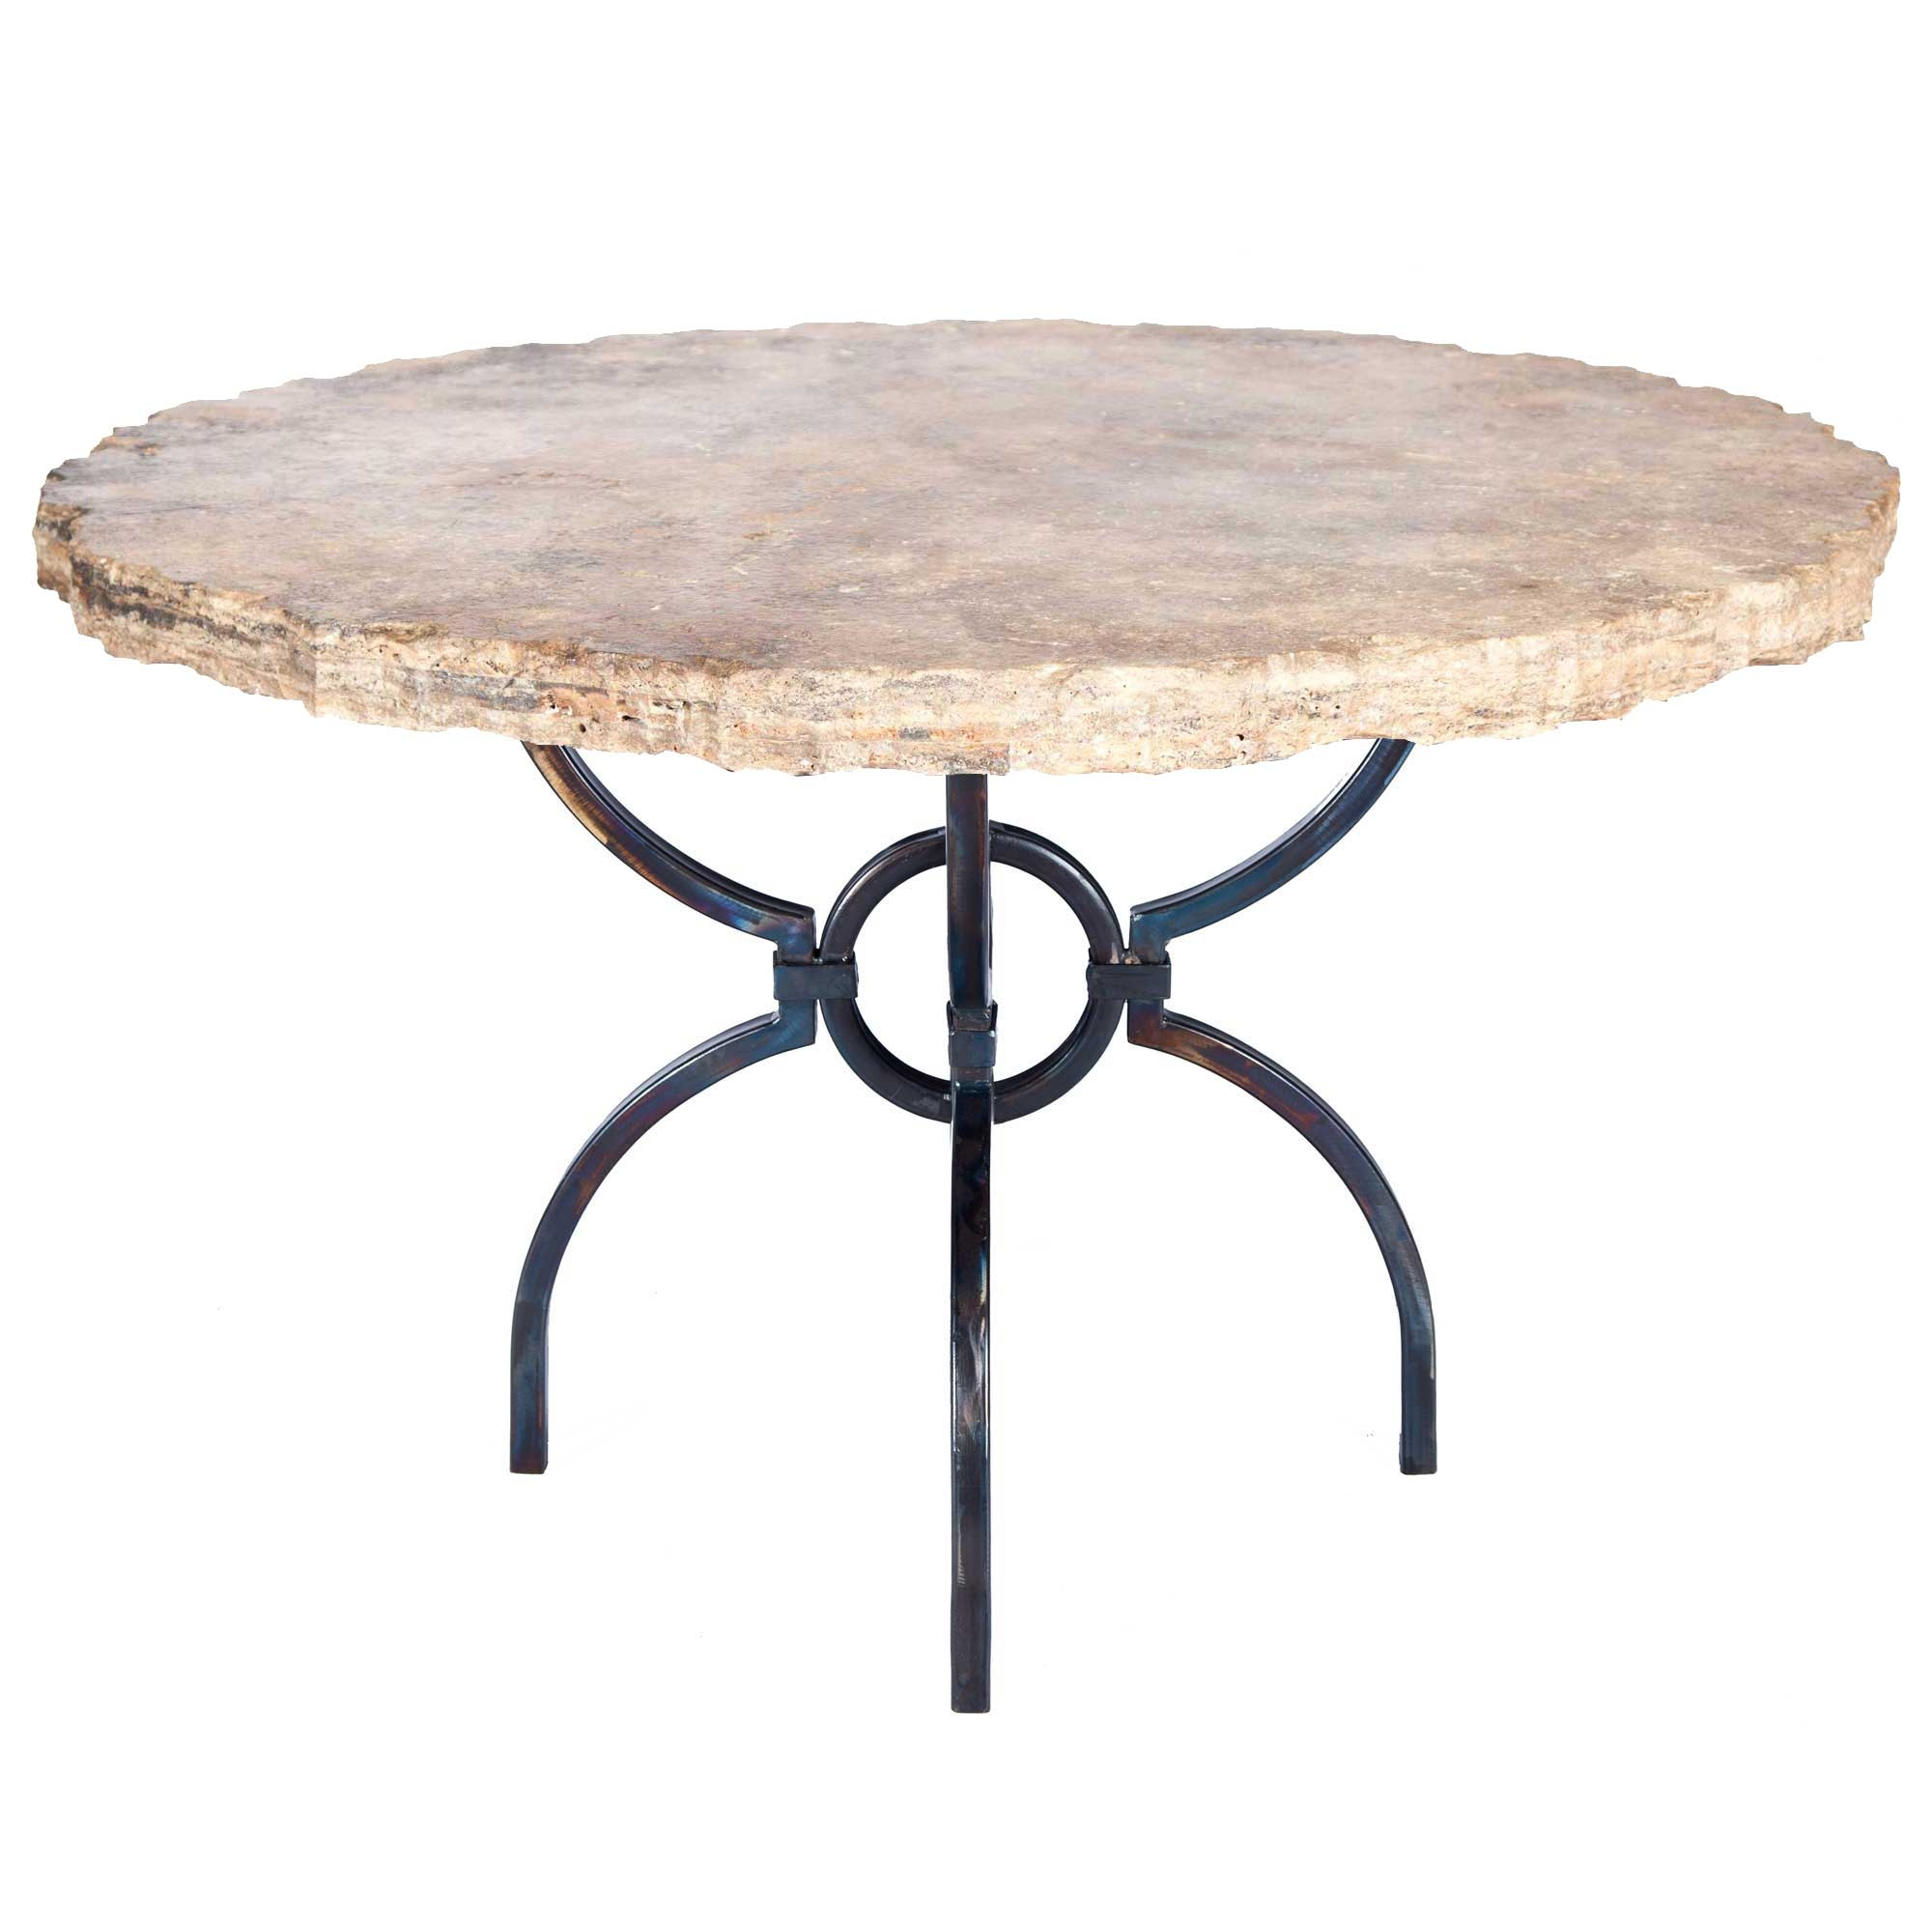 Dining table with wrought iron base and 48 quot round marble table top